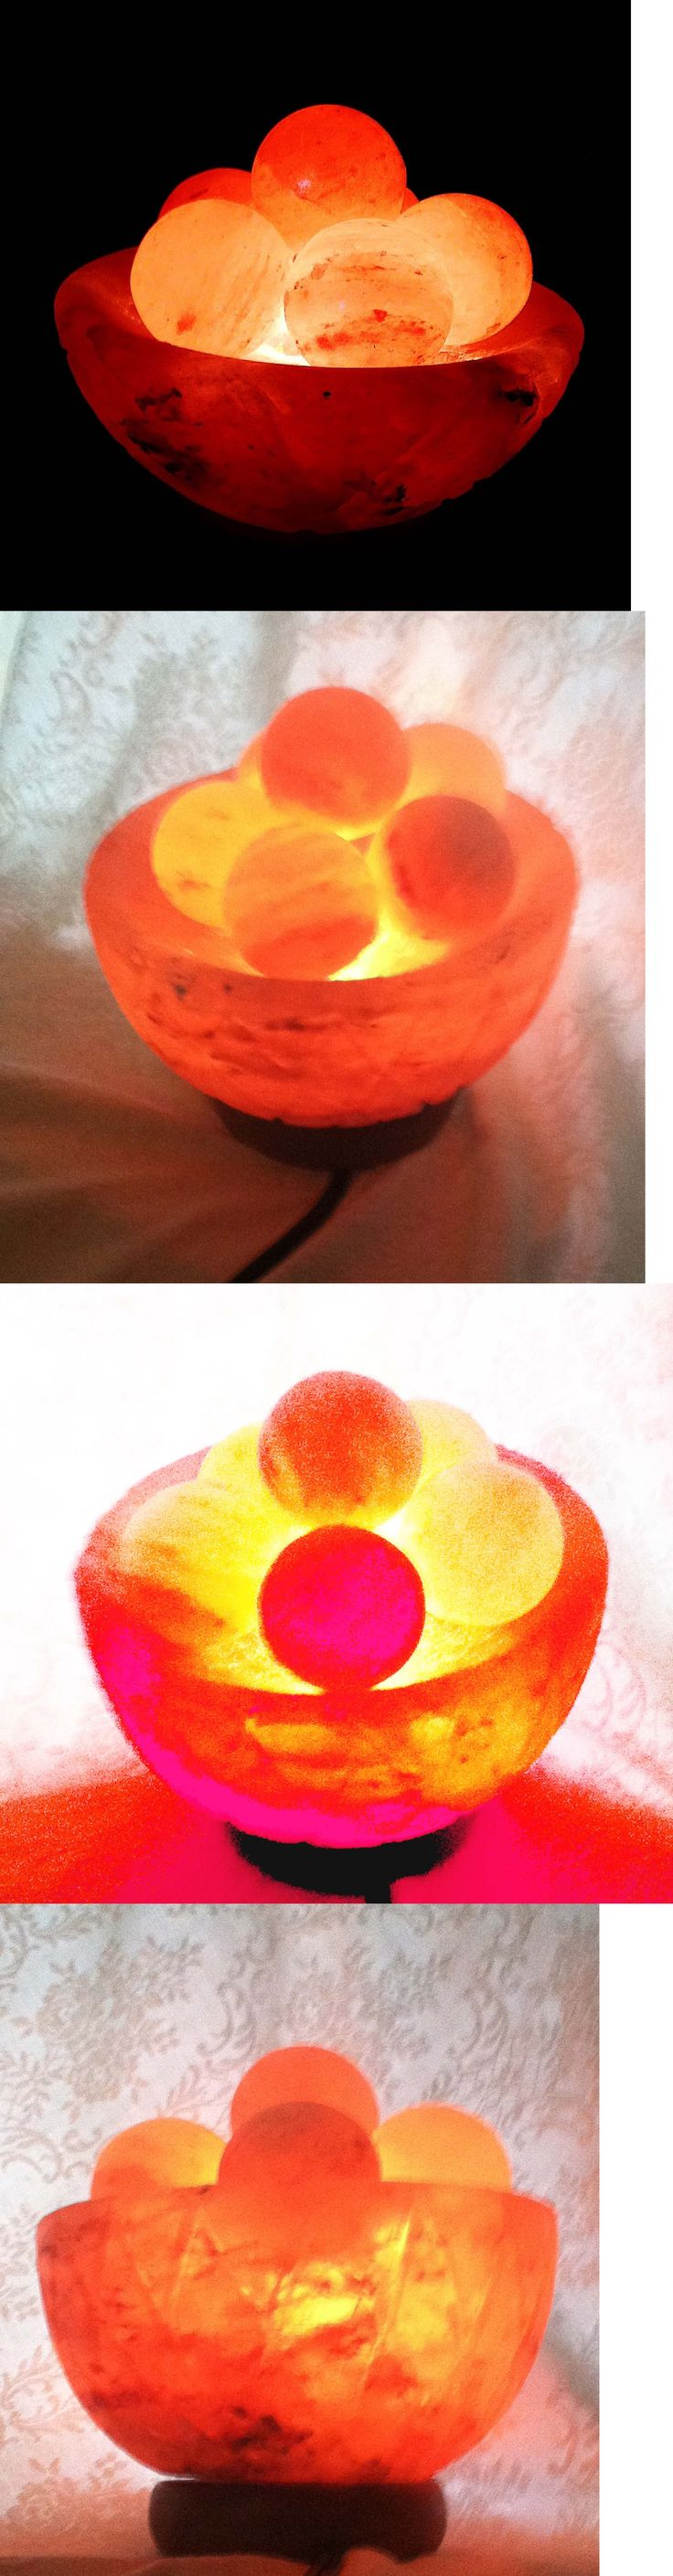 Massage Stones and Rocks: Ionic Air Purifier Pure Himalayan Salt® Fire Bowl With Massage Balls Crystal Sea -> BUY IT NOW ONLY: $49 on eBay!